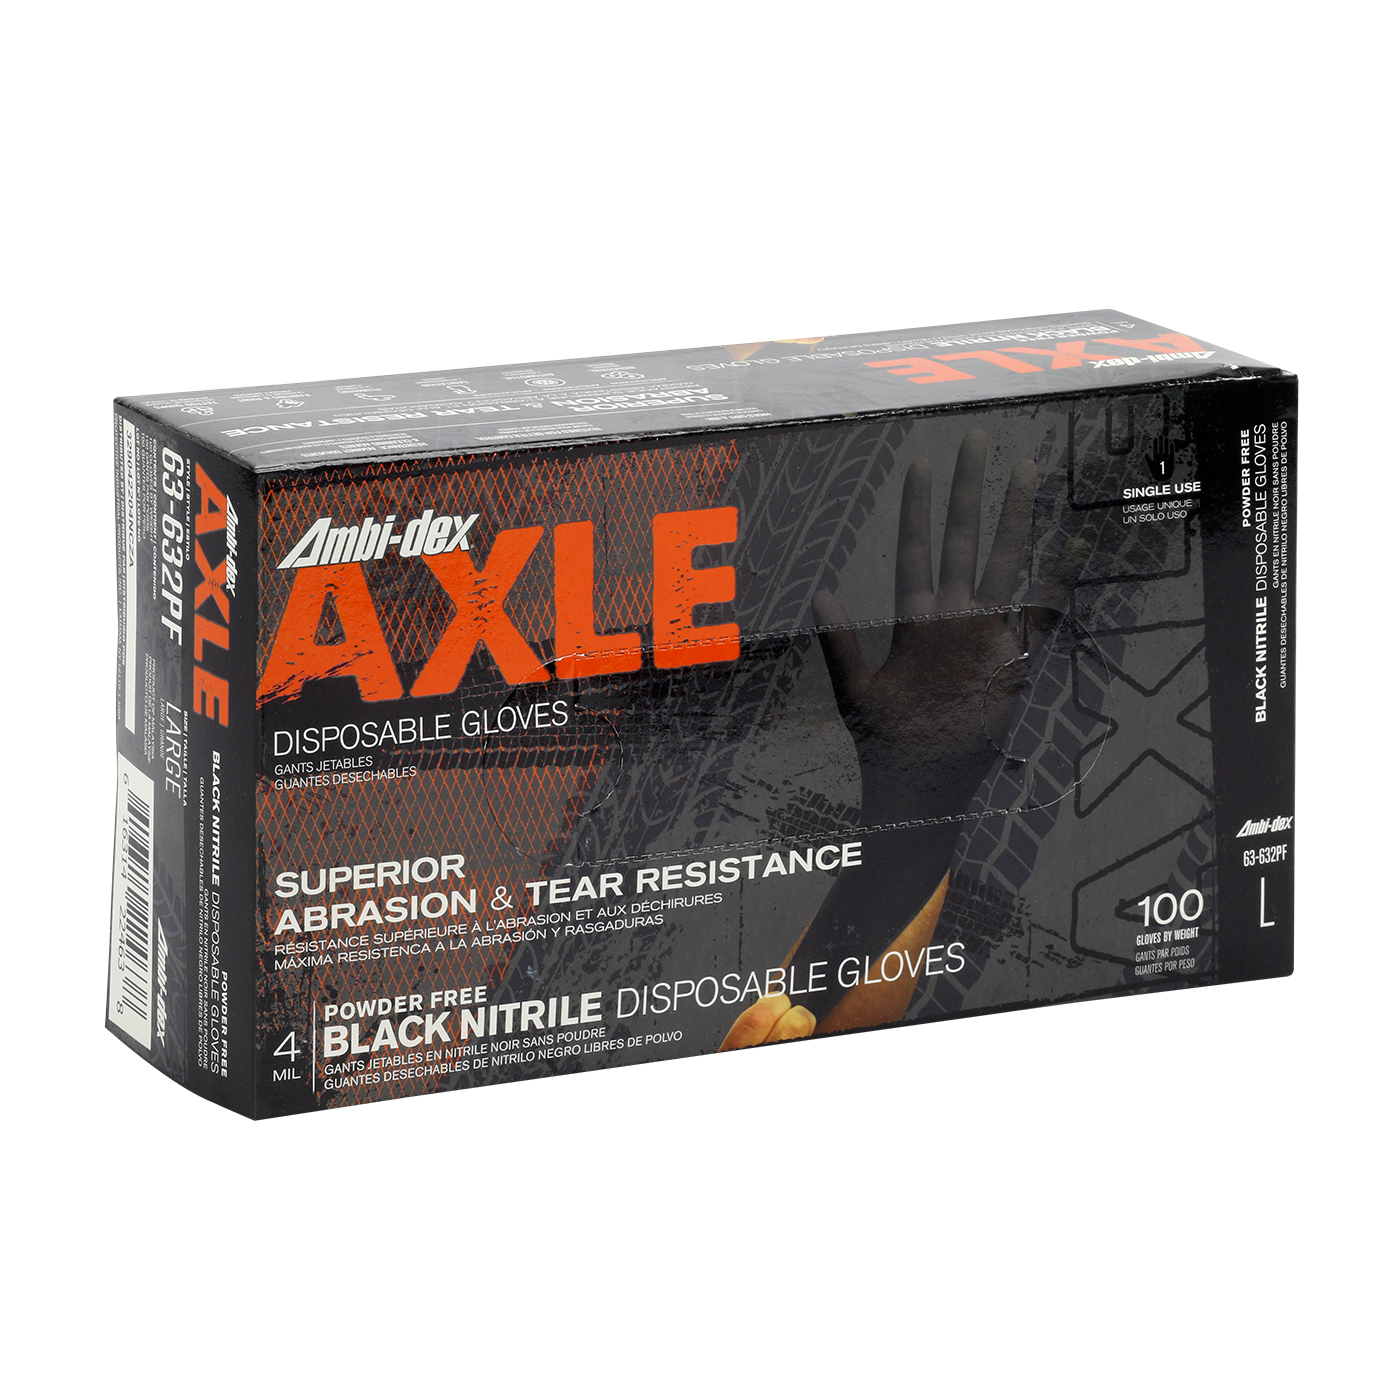 #63-632PF Ambi-dex® Axle Disposable Black Nitrile Glove, Powder-Free with Textured Grip - 4 mil